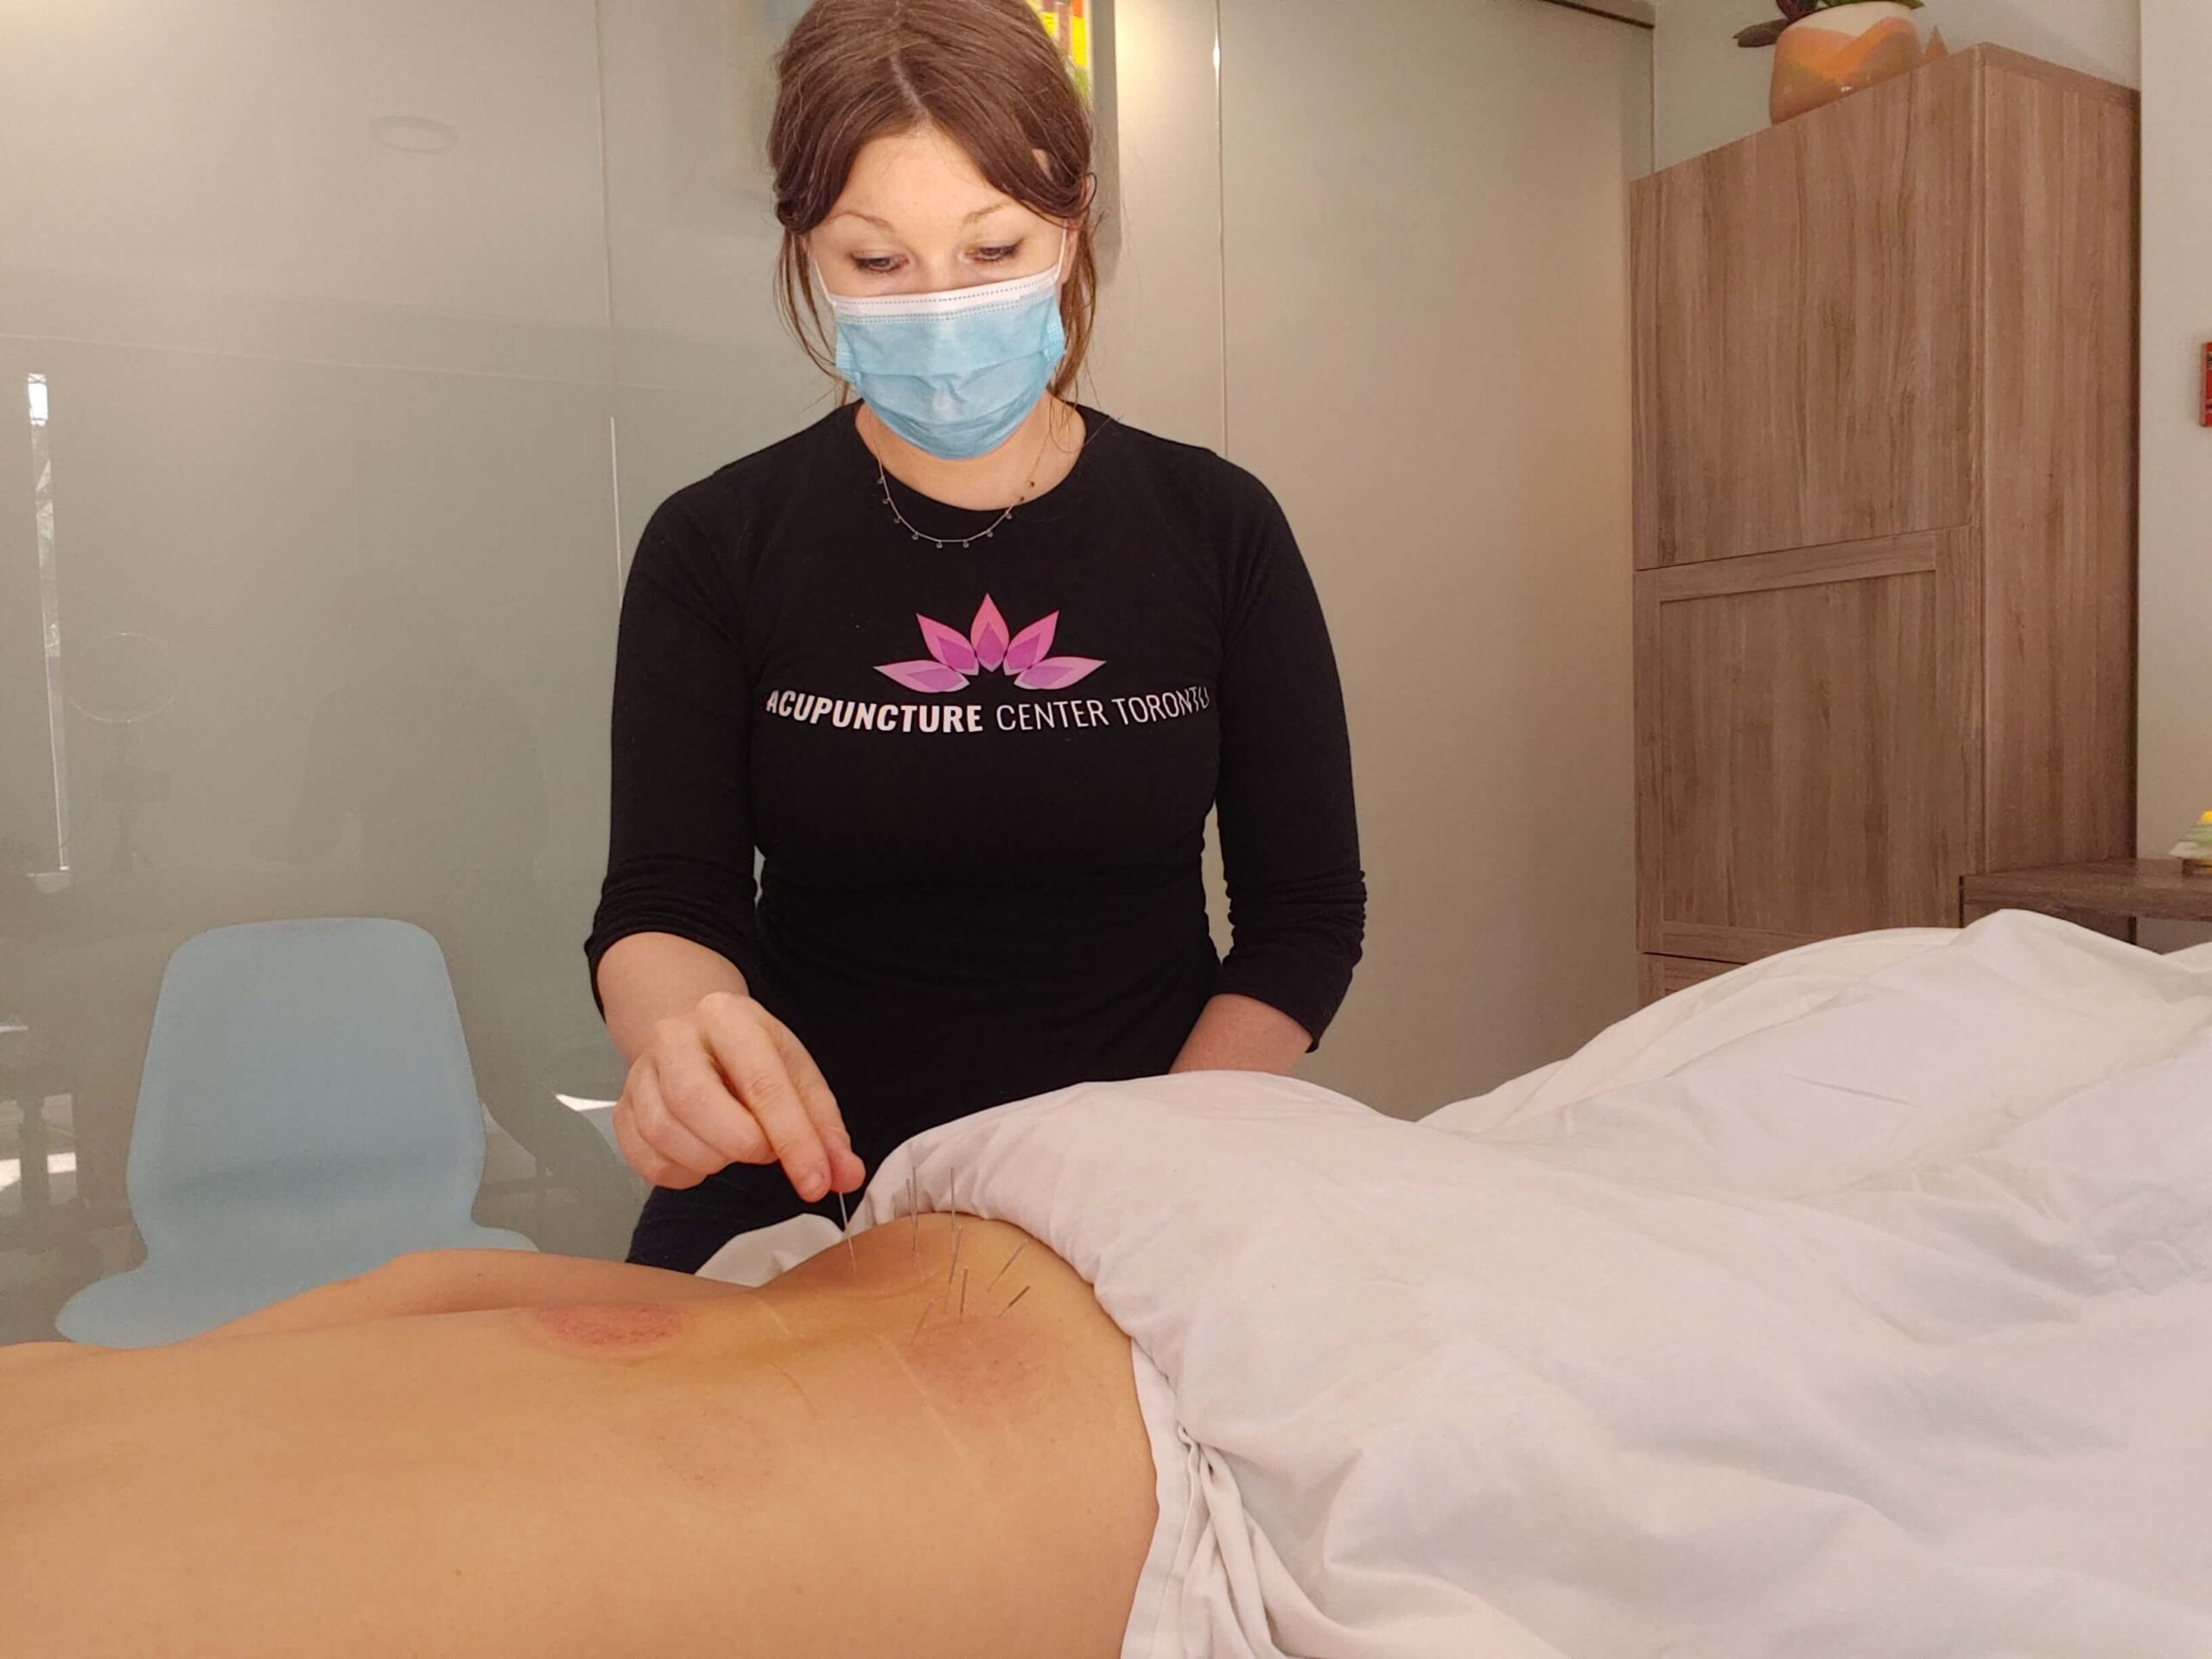 Voted best in Toronto for low back pain at Acupuncture Center Toronto at Bloor and Yonge